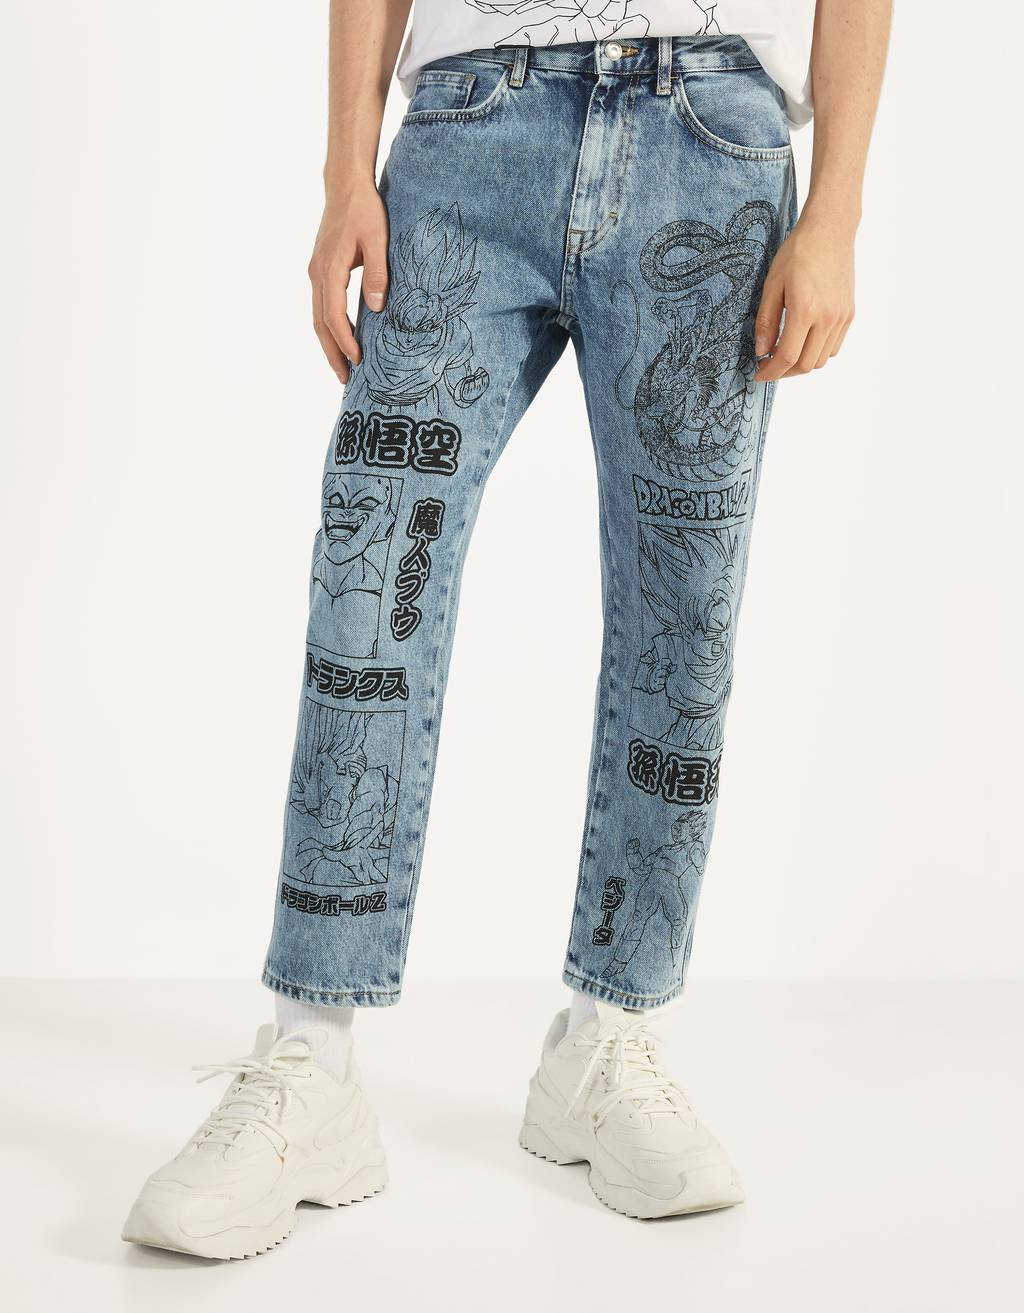 Dragon Ball Z x Bershka loose fit jeans